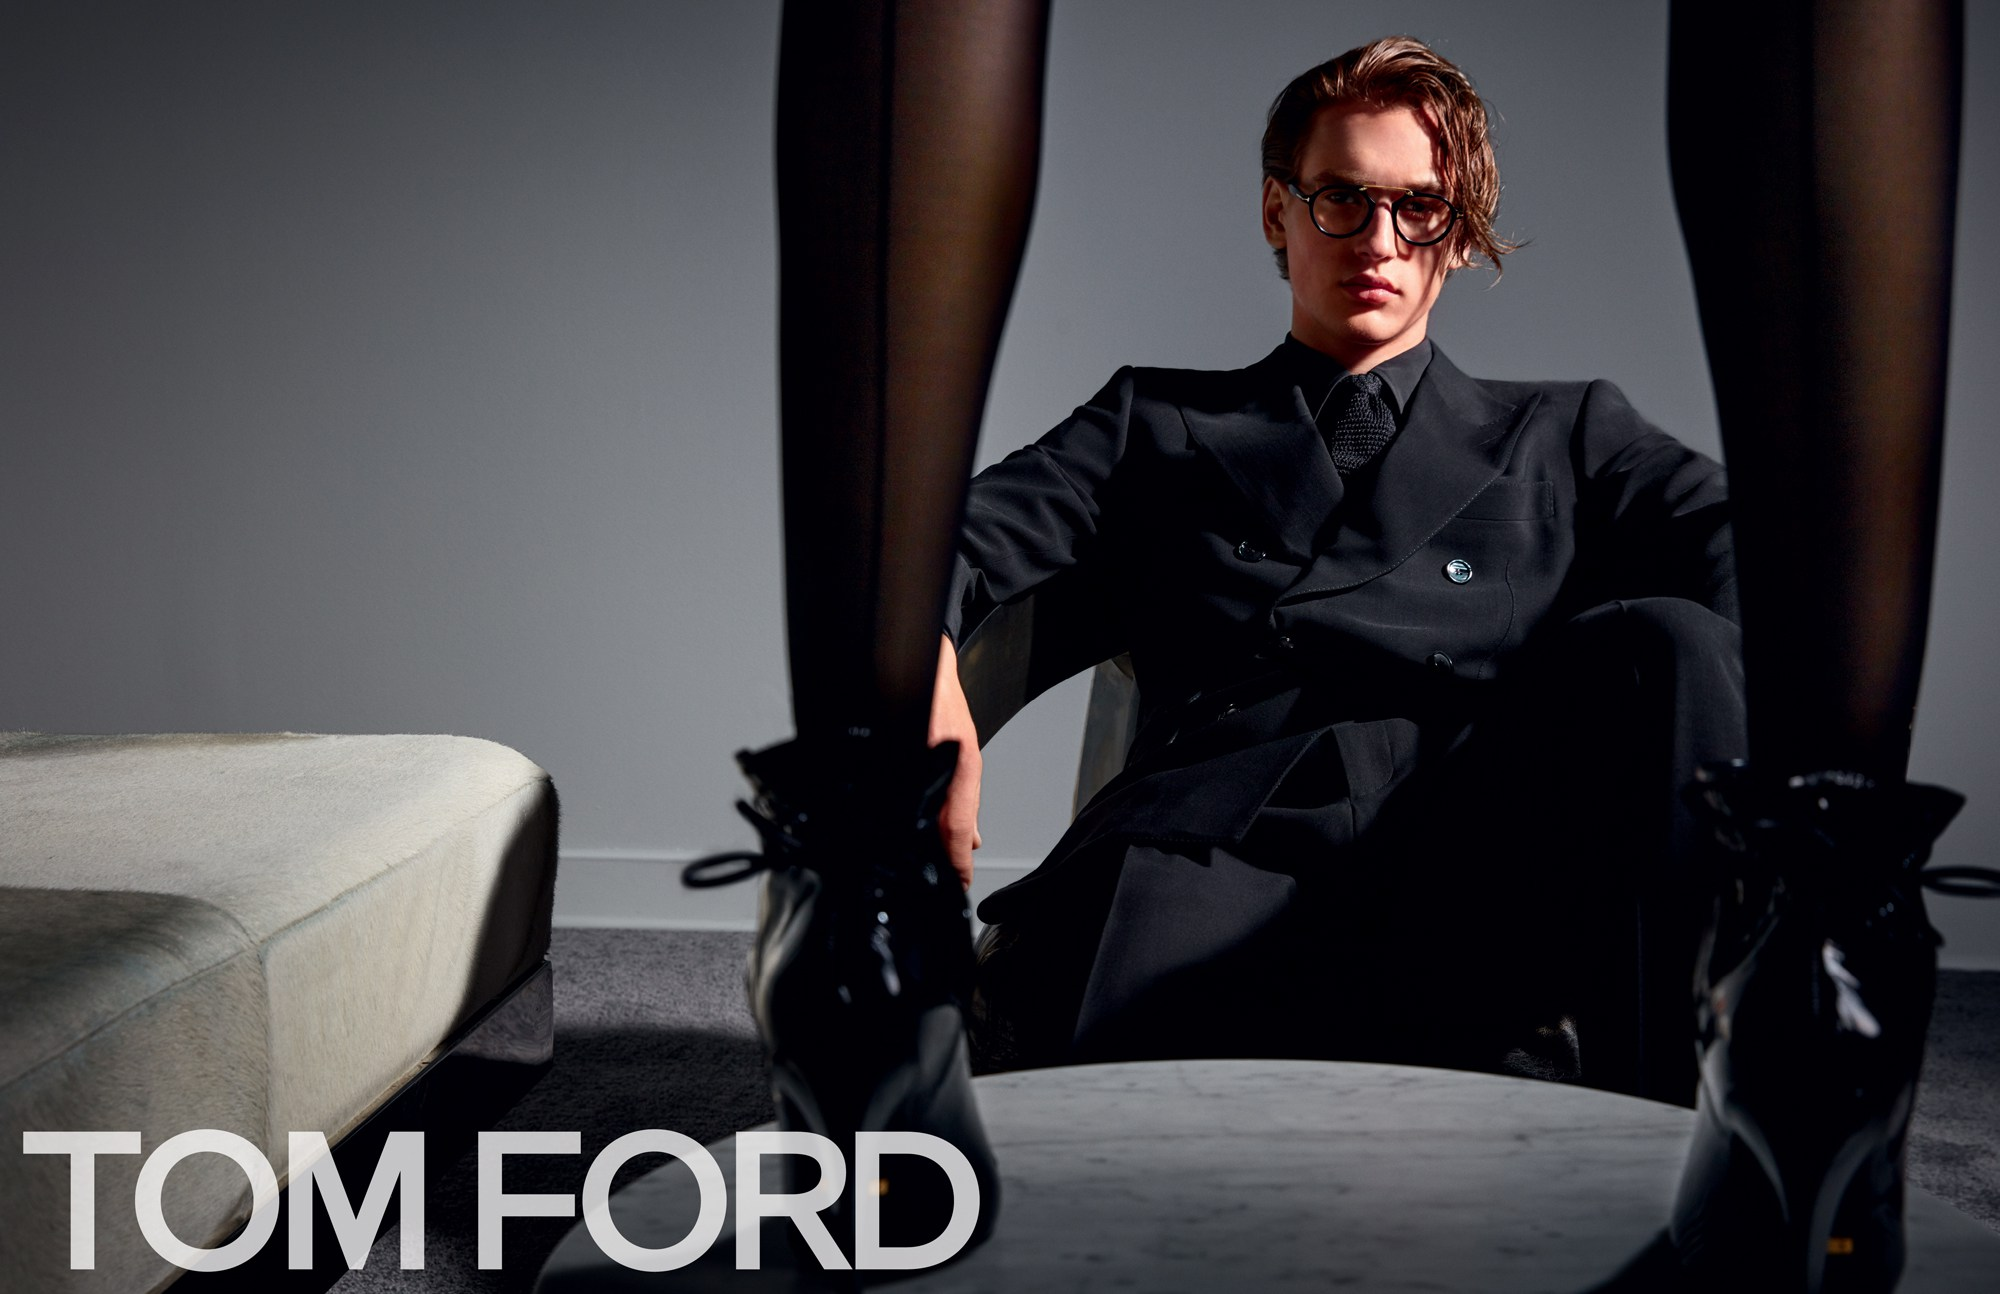 Tom-Ford-fall-2017-ad-campaign-007